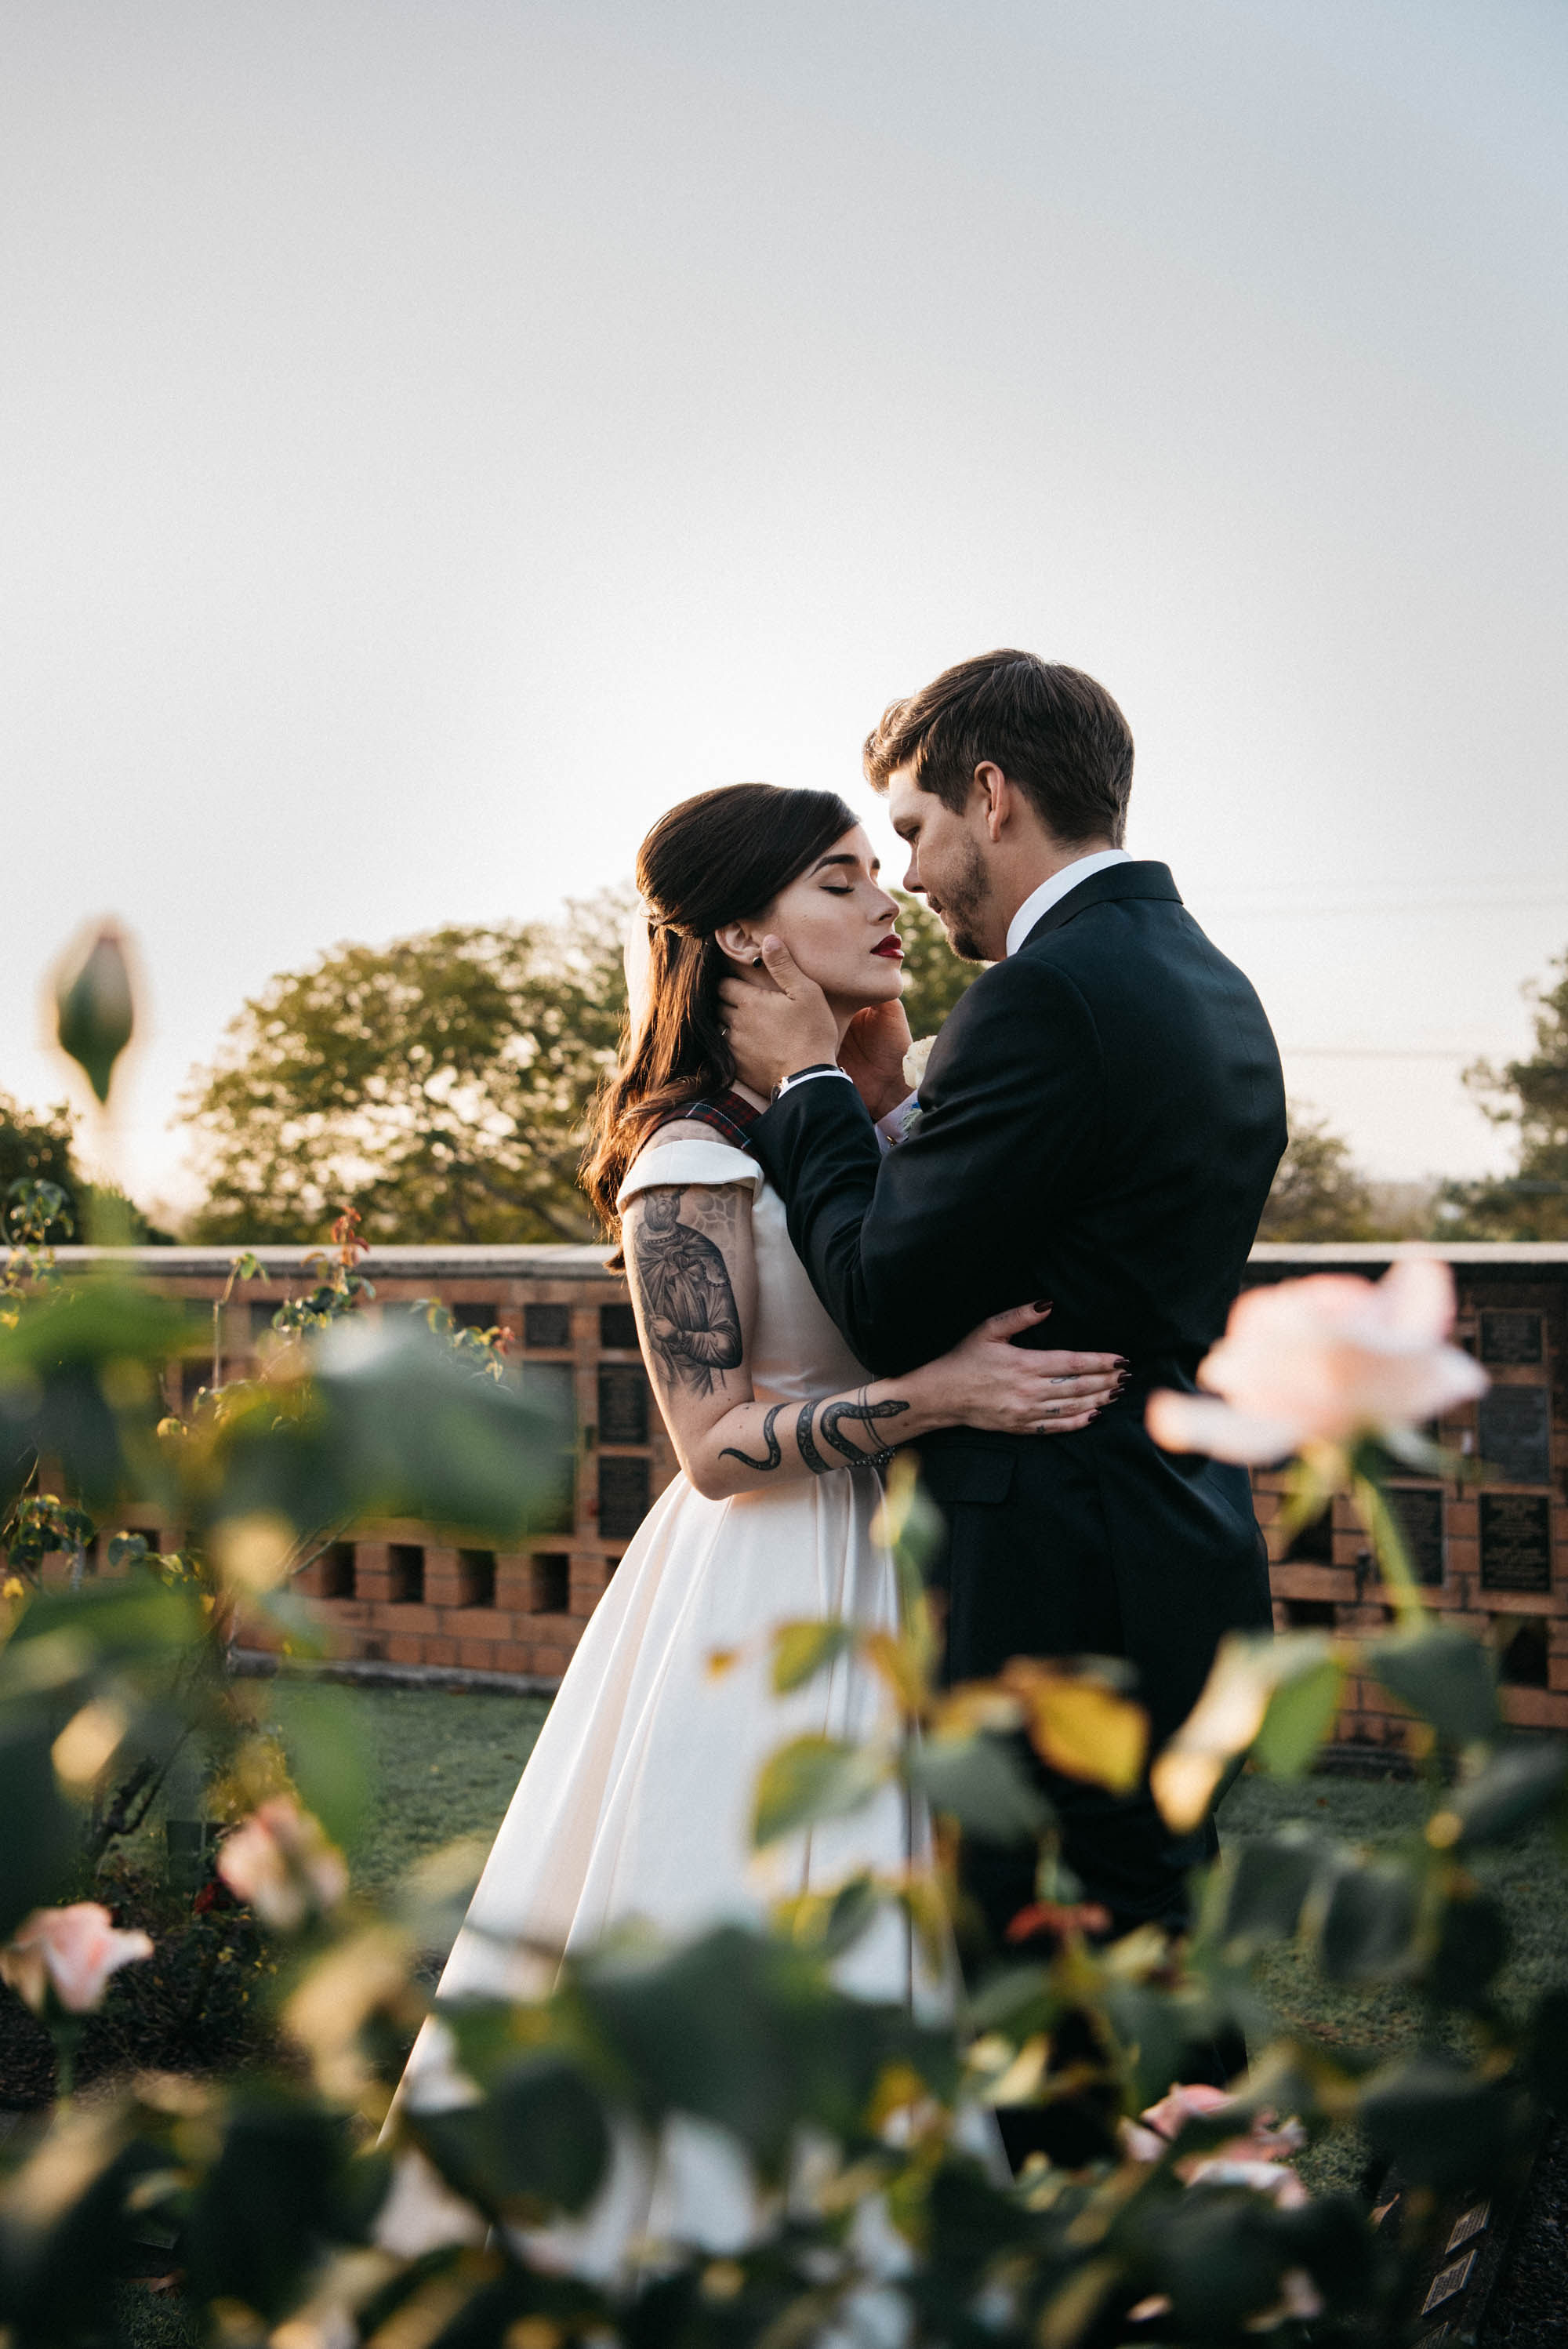 This dark romance wedding took place at a crematorium where the bride works